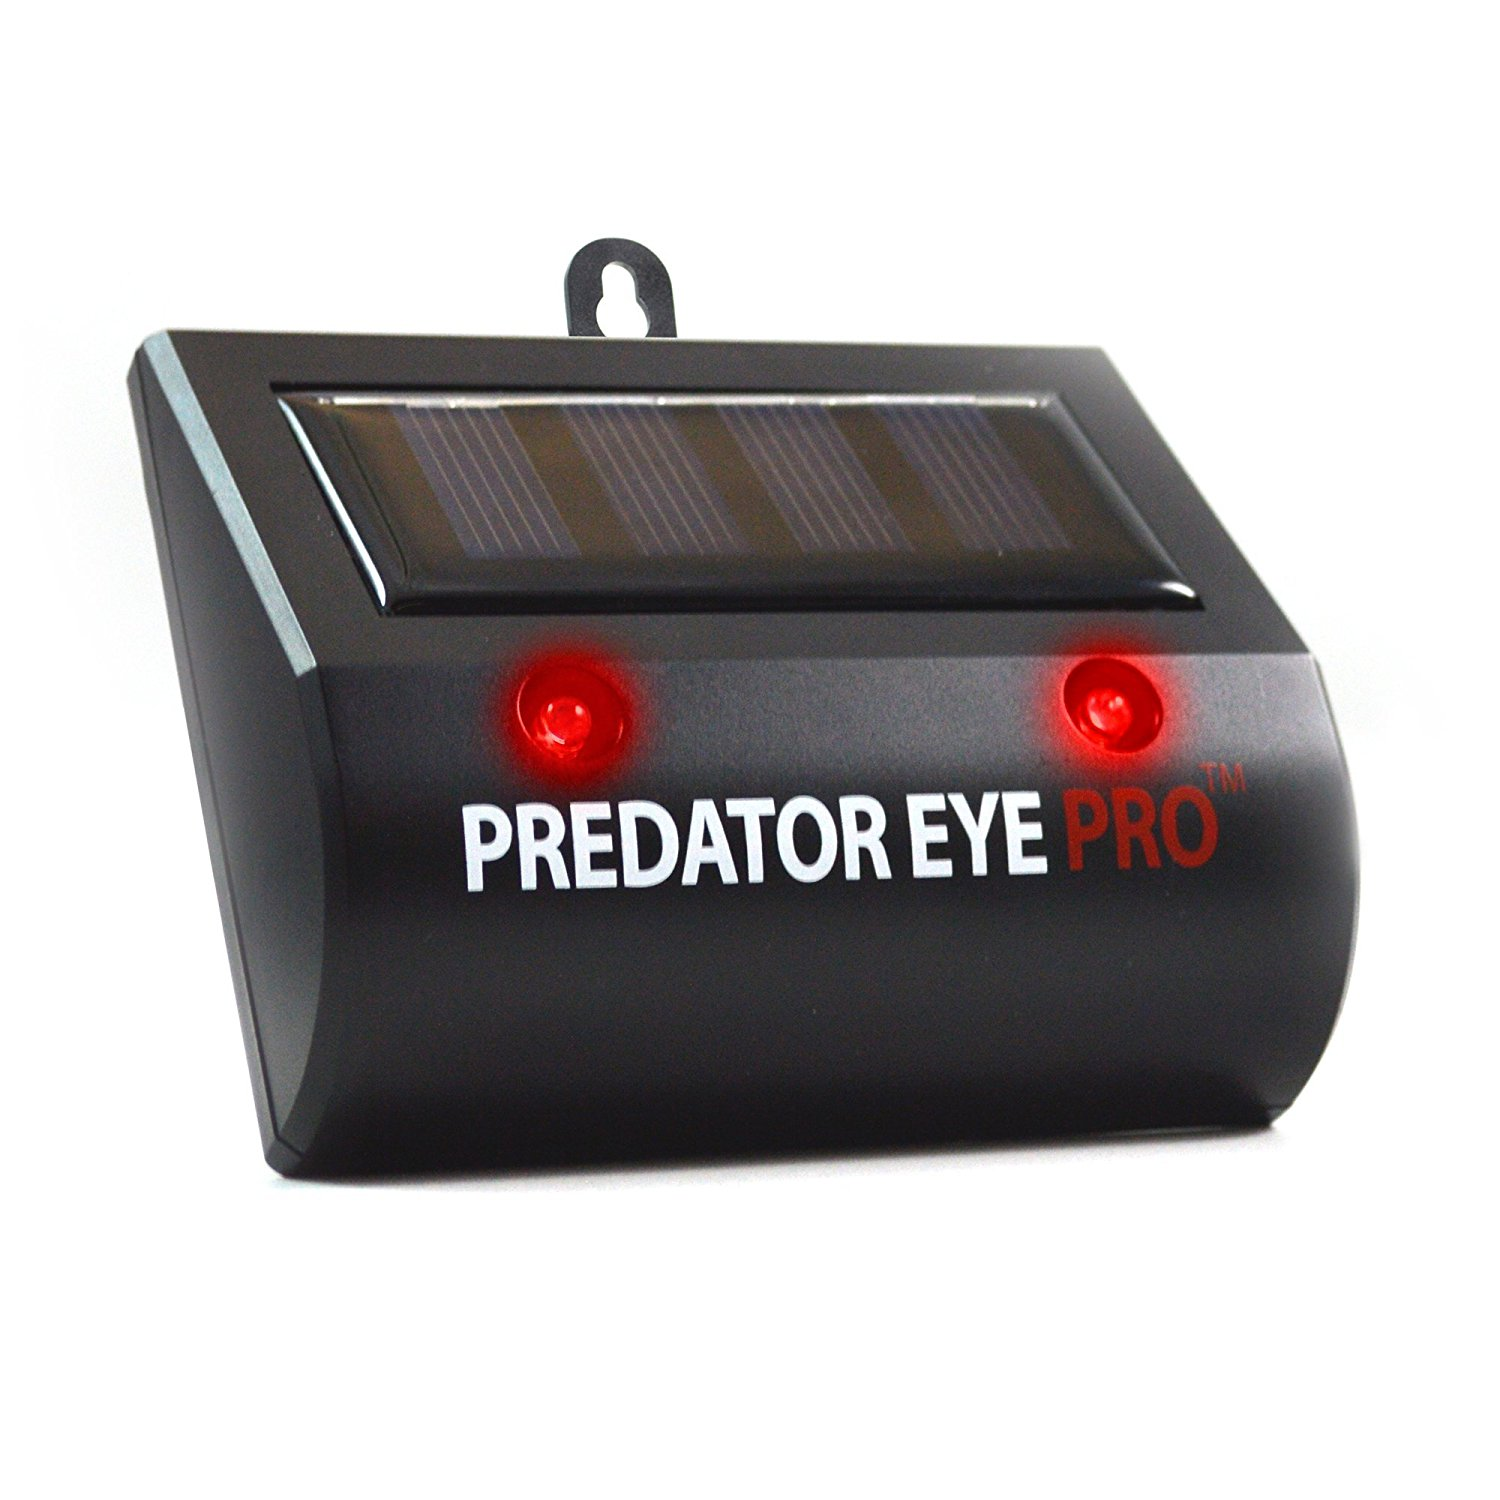 Aspectek l 4600sq ft l Predator Eye PRO l Kick Stand Solar Powered | Predator Light Deterrent Light | Night Time Animal Control for Wild Animals Rodents, Cats, Dogs, Birds, Raccoon, Wolves, Foxes